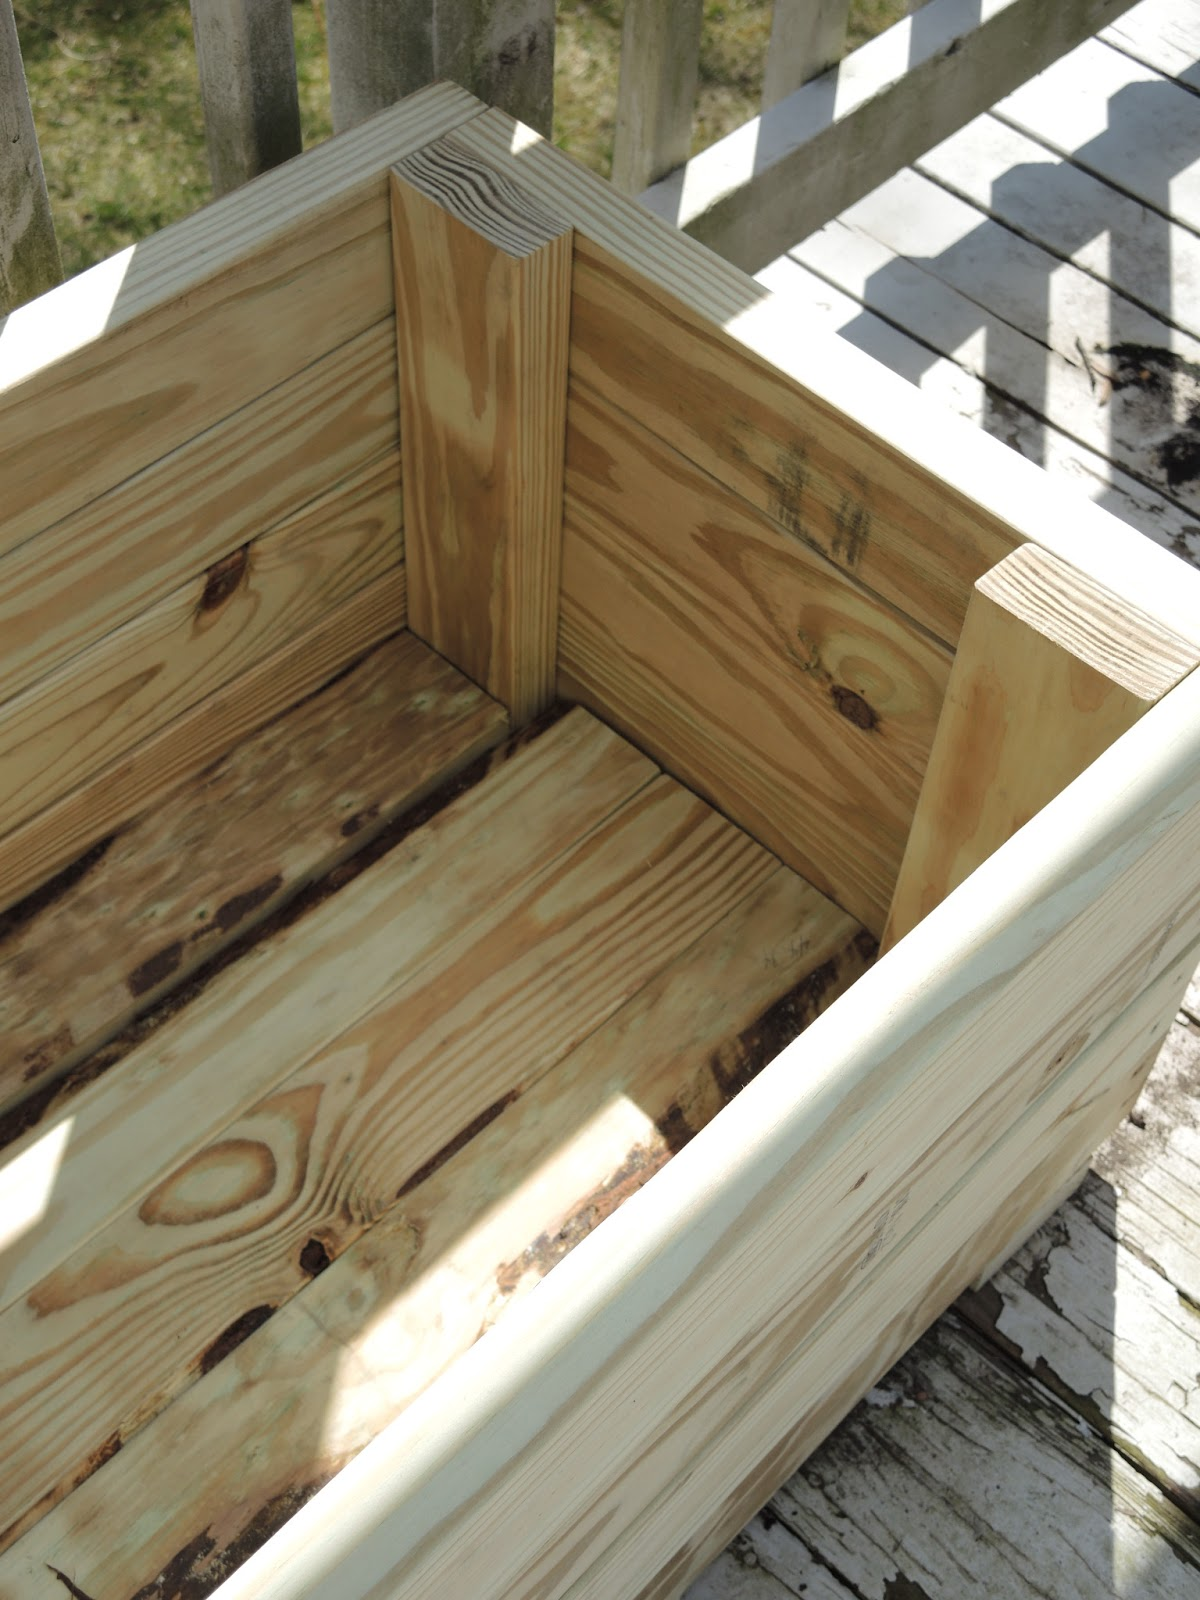 cm shaw studios how to build a planter out of pressure. Black Bedroom Furniture Sets. Home Design Ideas